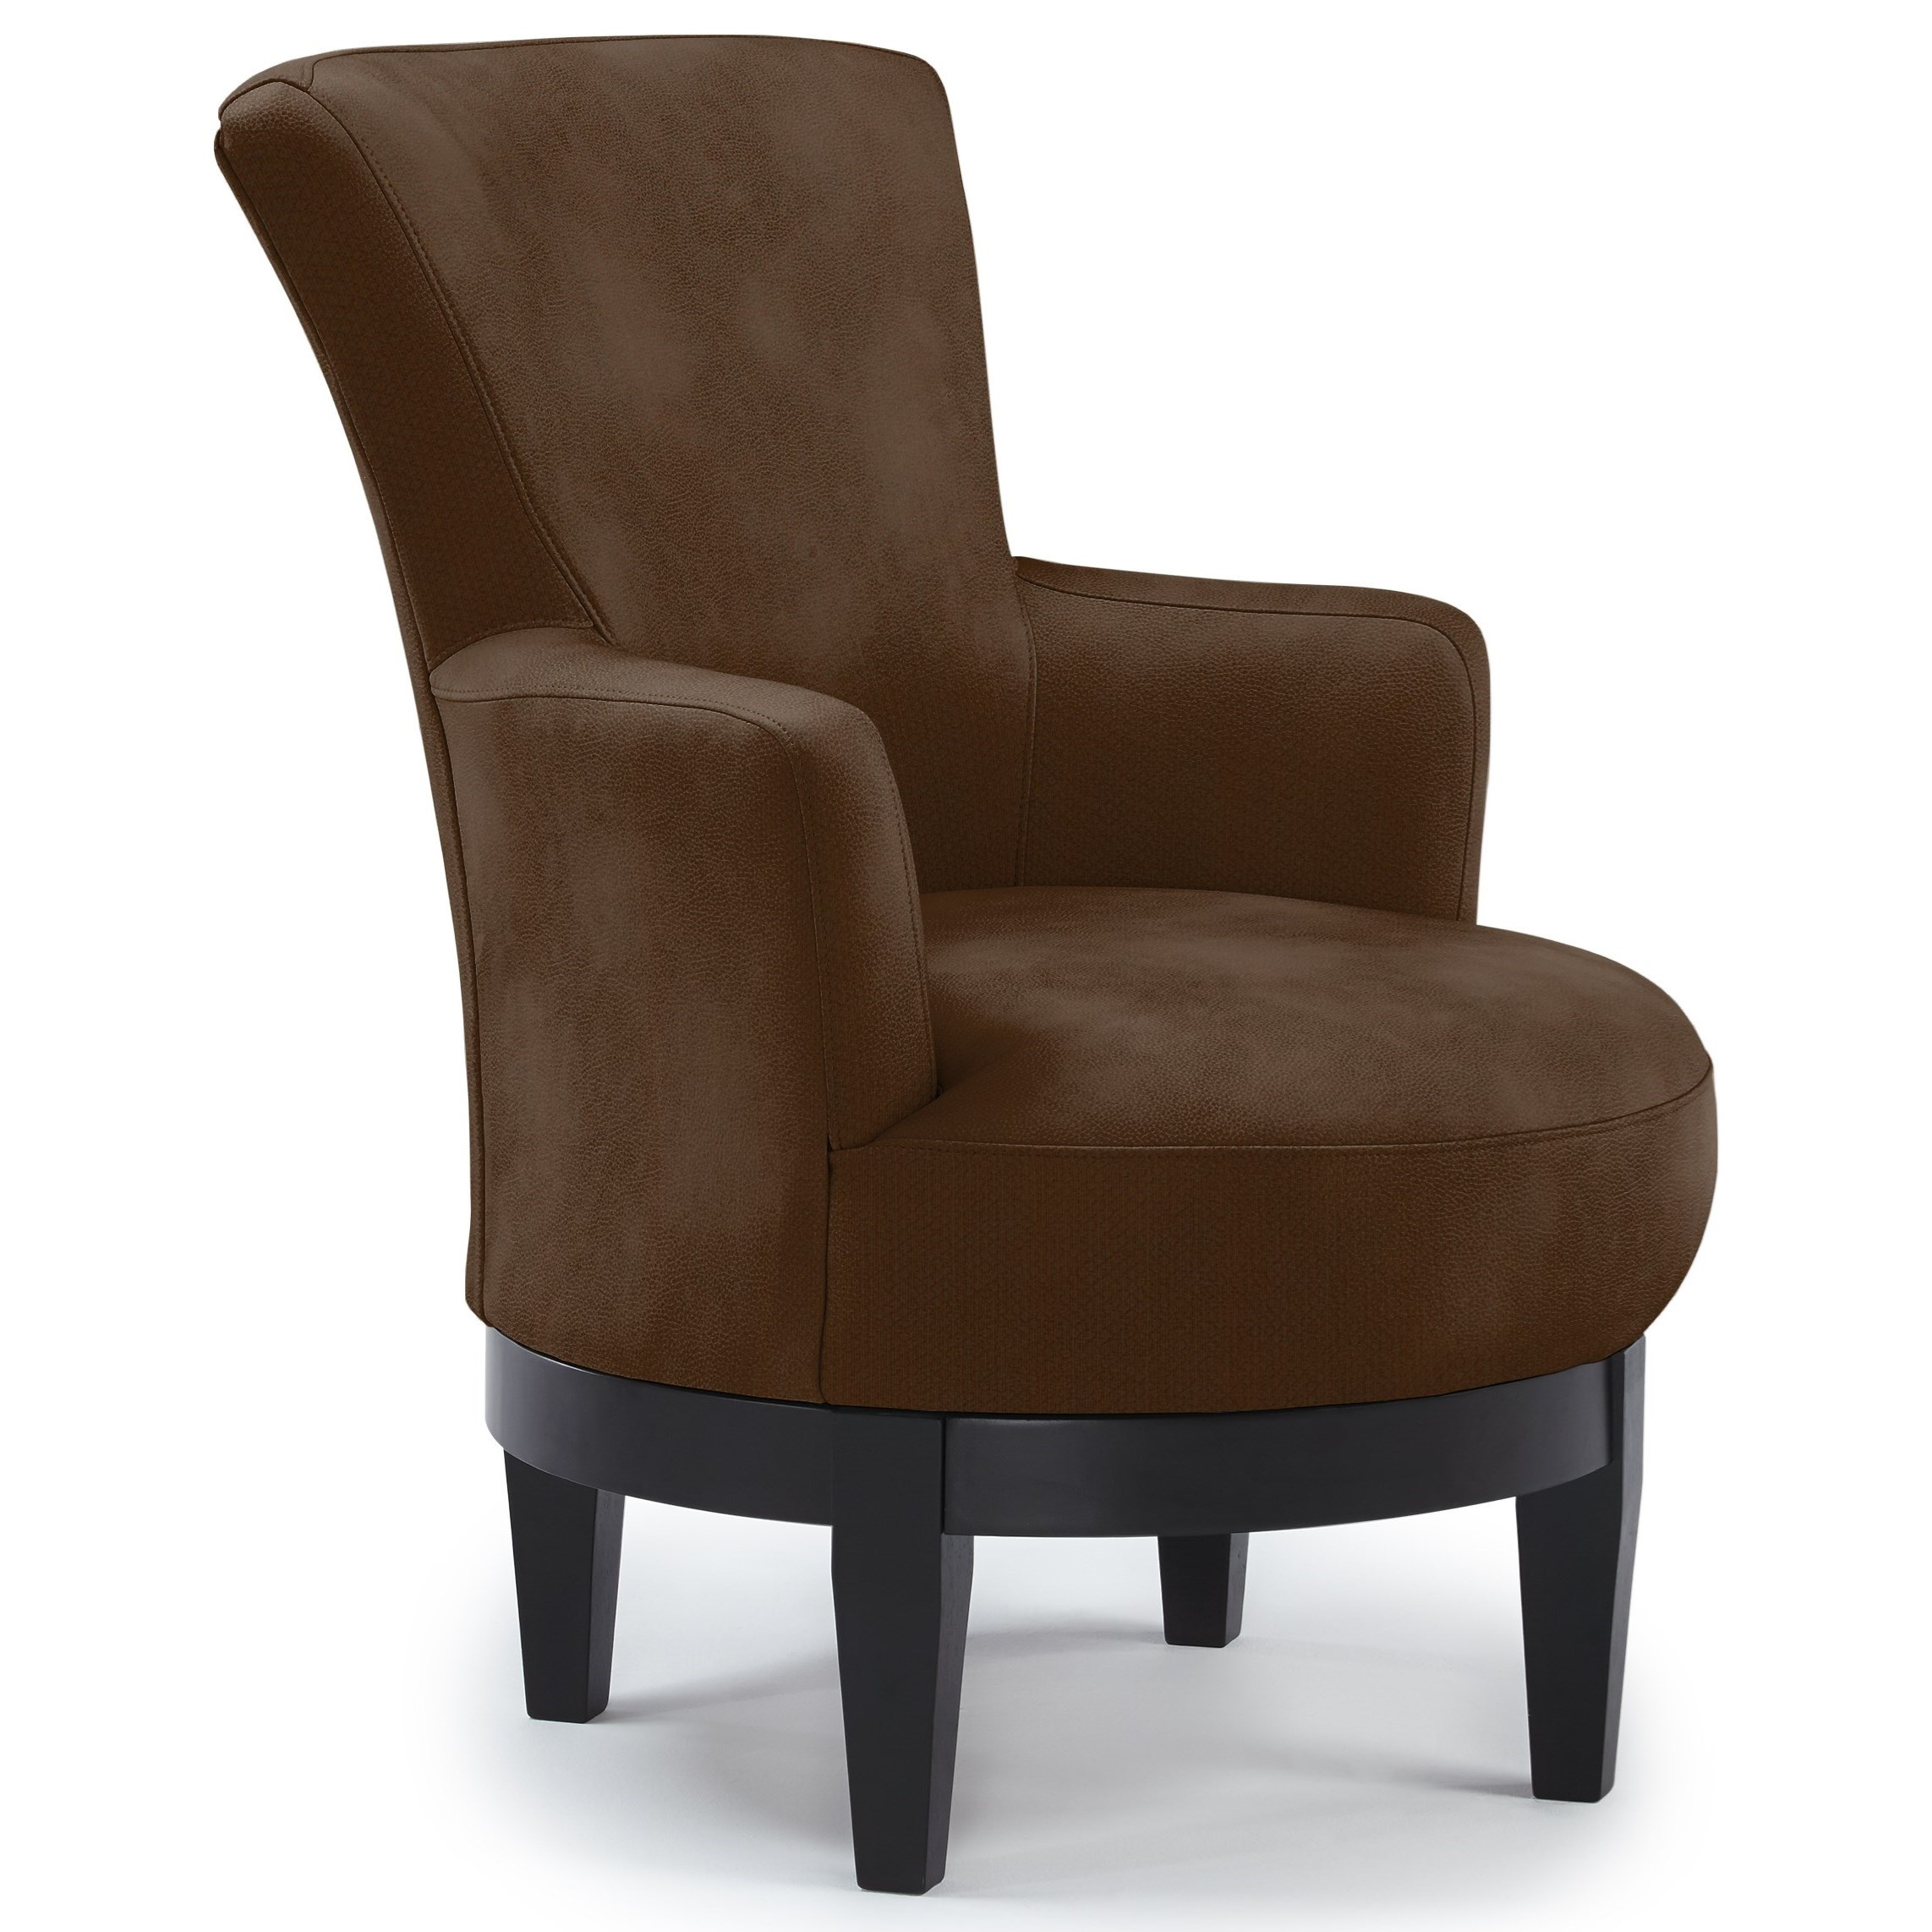 Chairs - Swivel Barrel Swivel Chair by Best Home Furnishings at Baer's Furniture